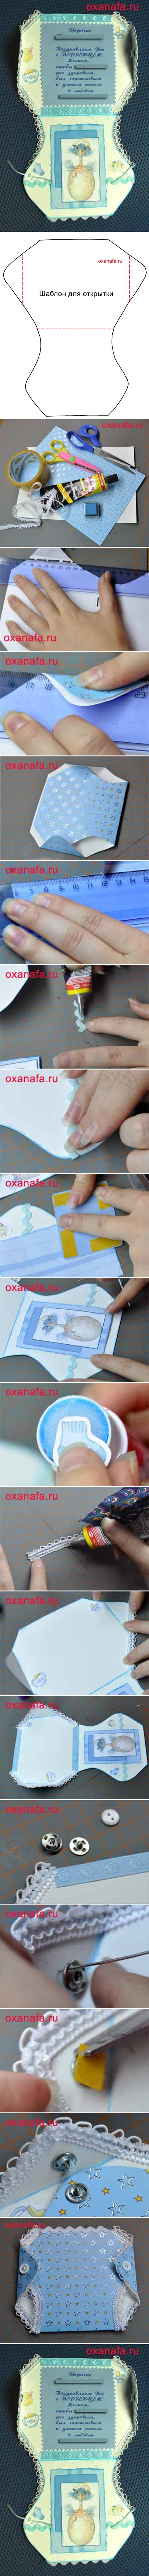 How to make pretty photo cards for birth announcements step by step DIY tutorial instructions